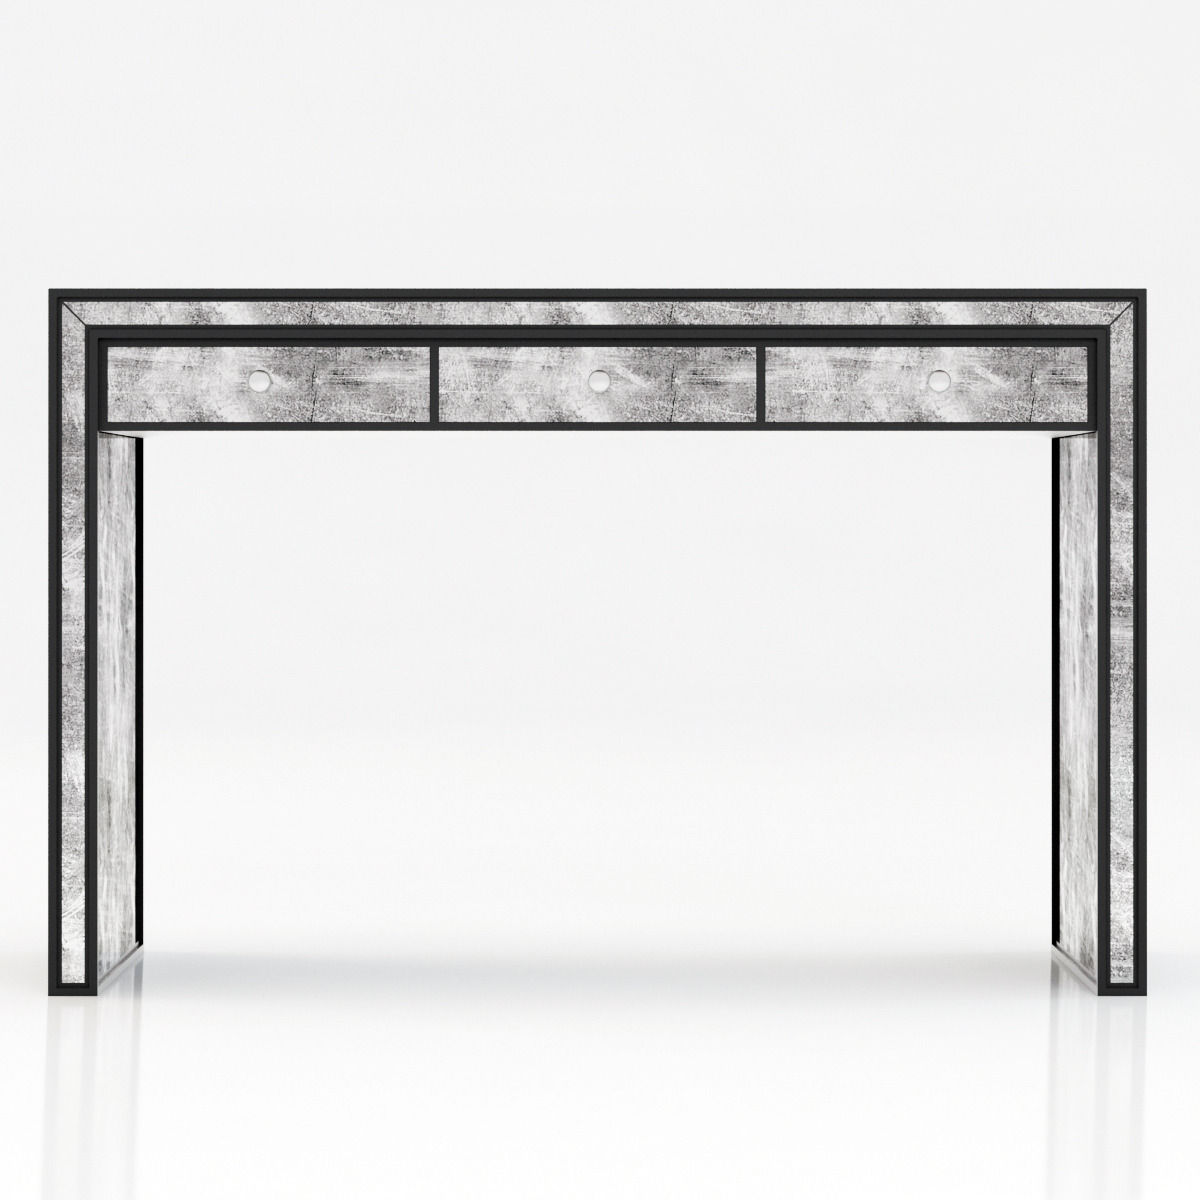 romano desired designs in glass wood the unit chests furniture perfect table tables and console cabinet vintage for italian mirror mirrored wardrobe luxury living room choose